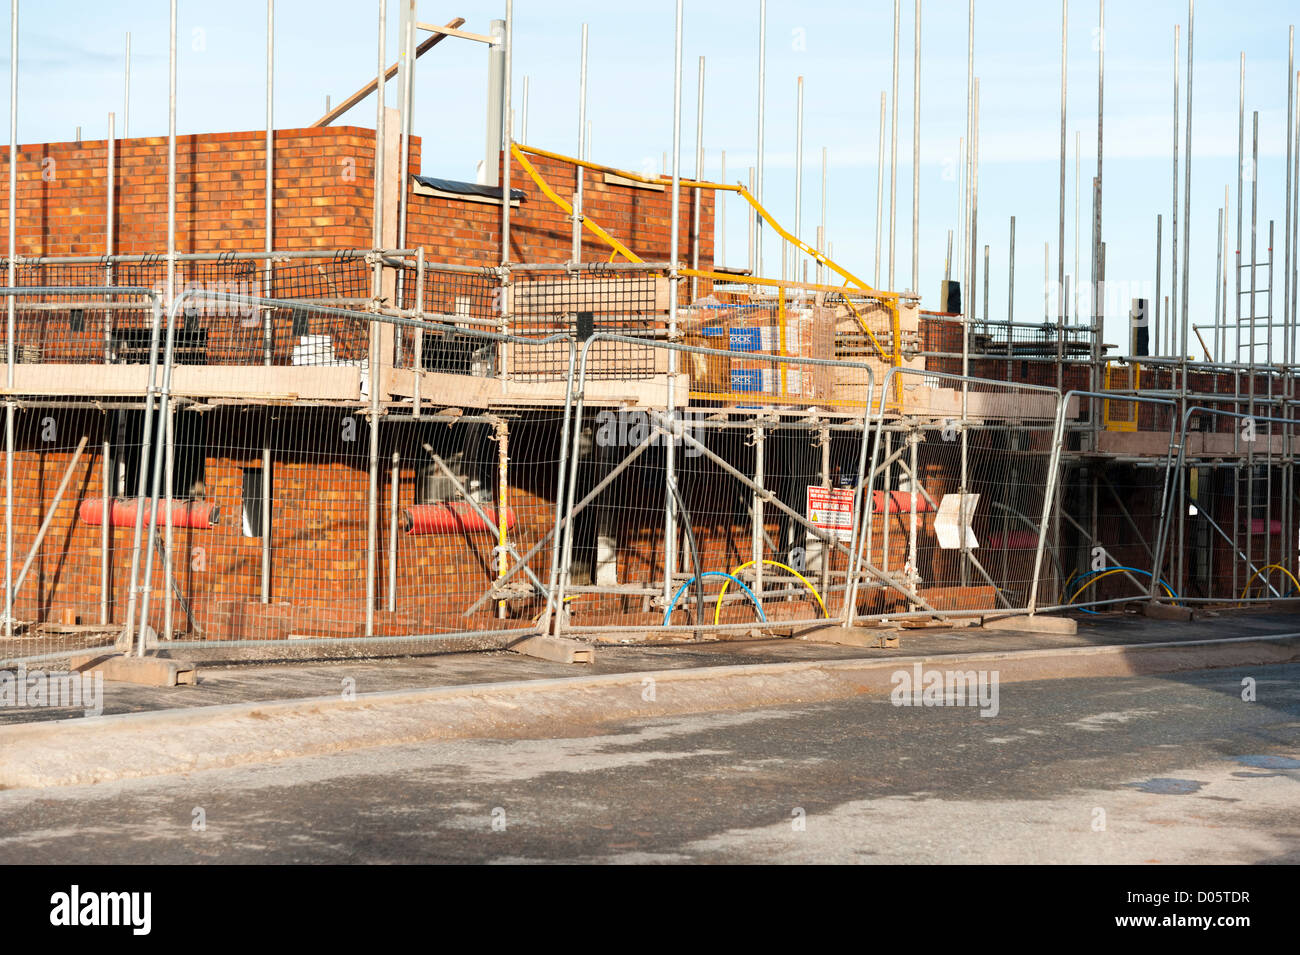 Building site for a new housing estate, UK. Scaffolding around a new house build. Stock Photo